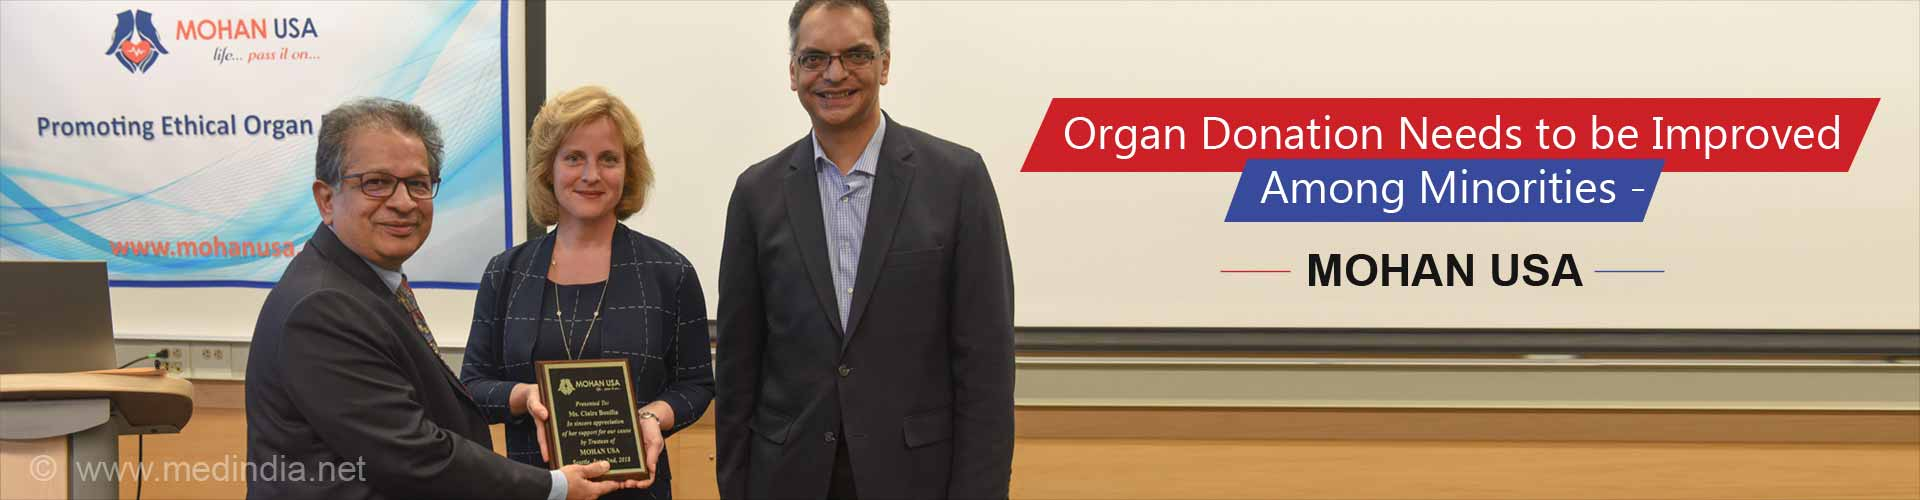 MOHAN USA and  American Society of Transplantation: Pioneering the Cause of Improving Organ Donation Rates Among Minorities